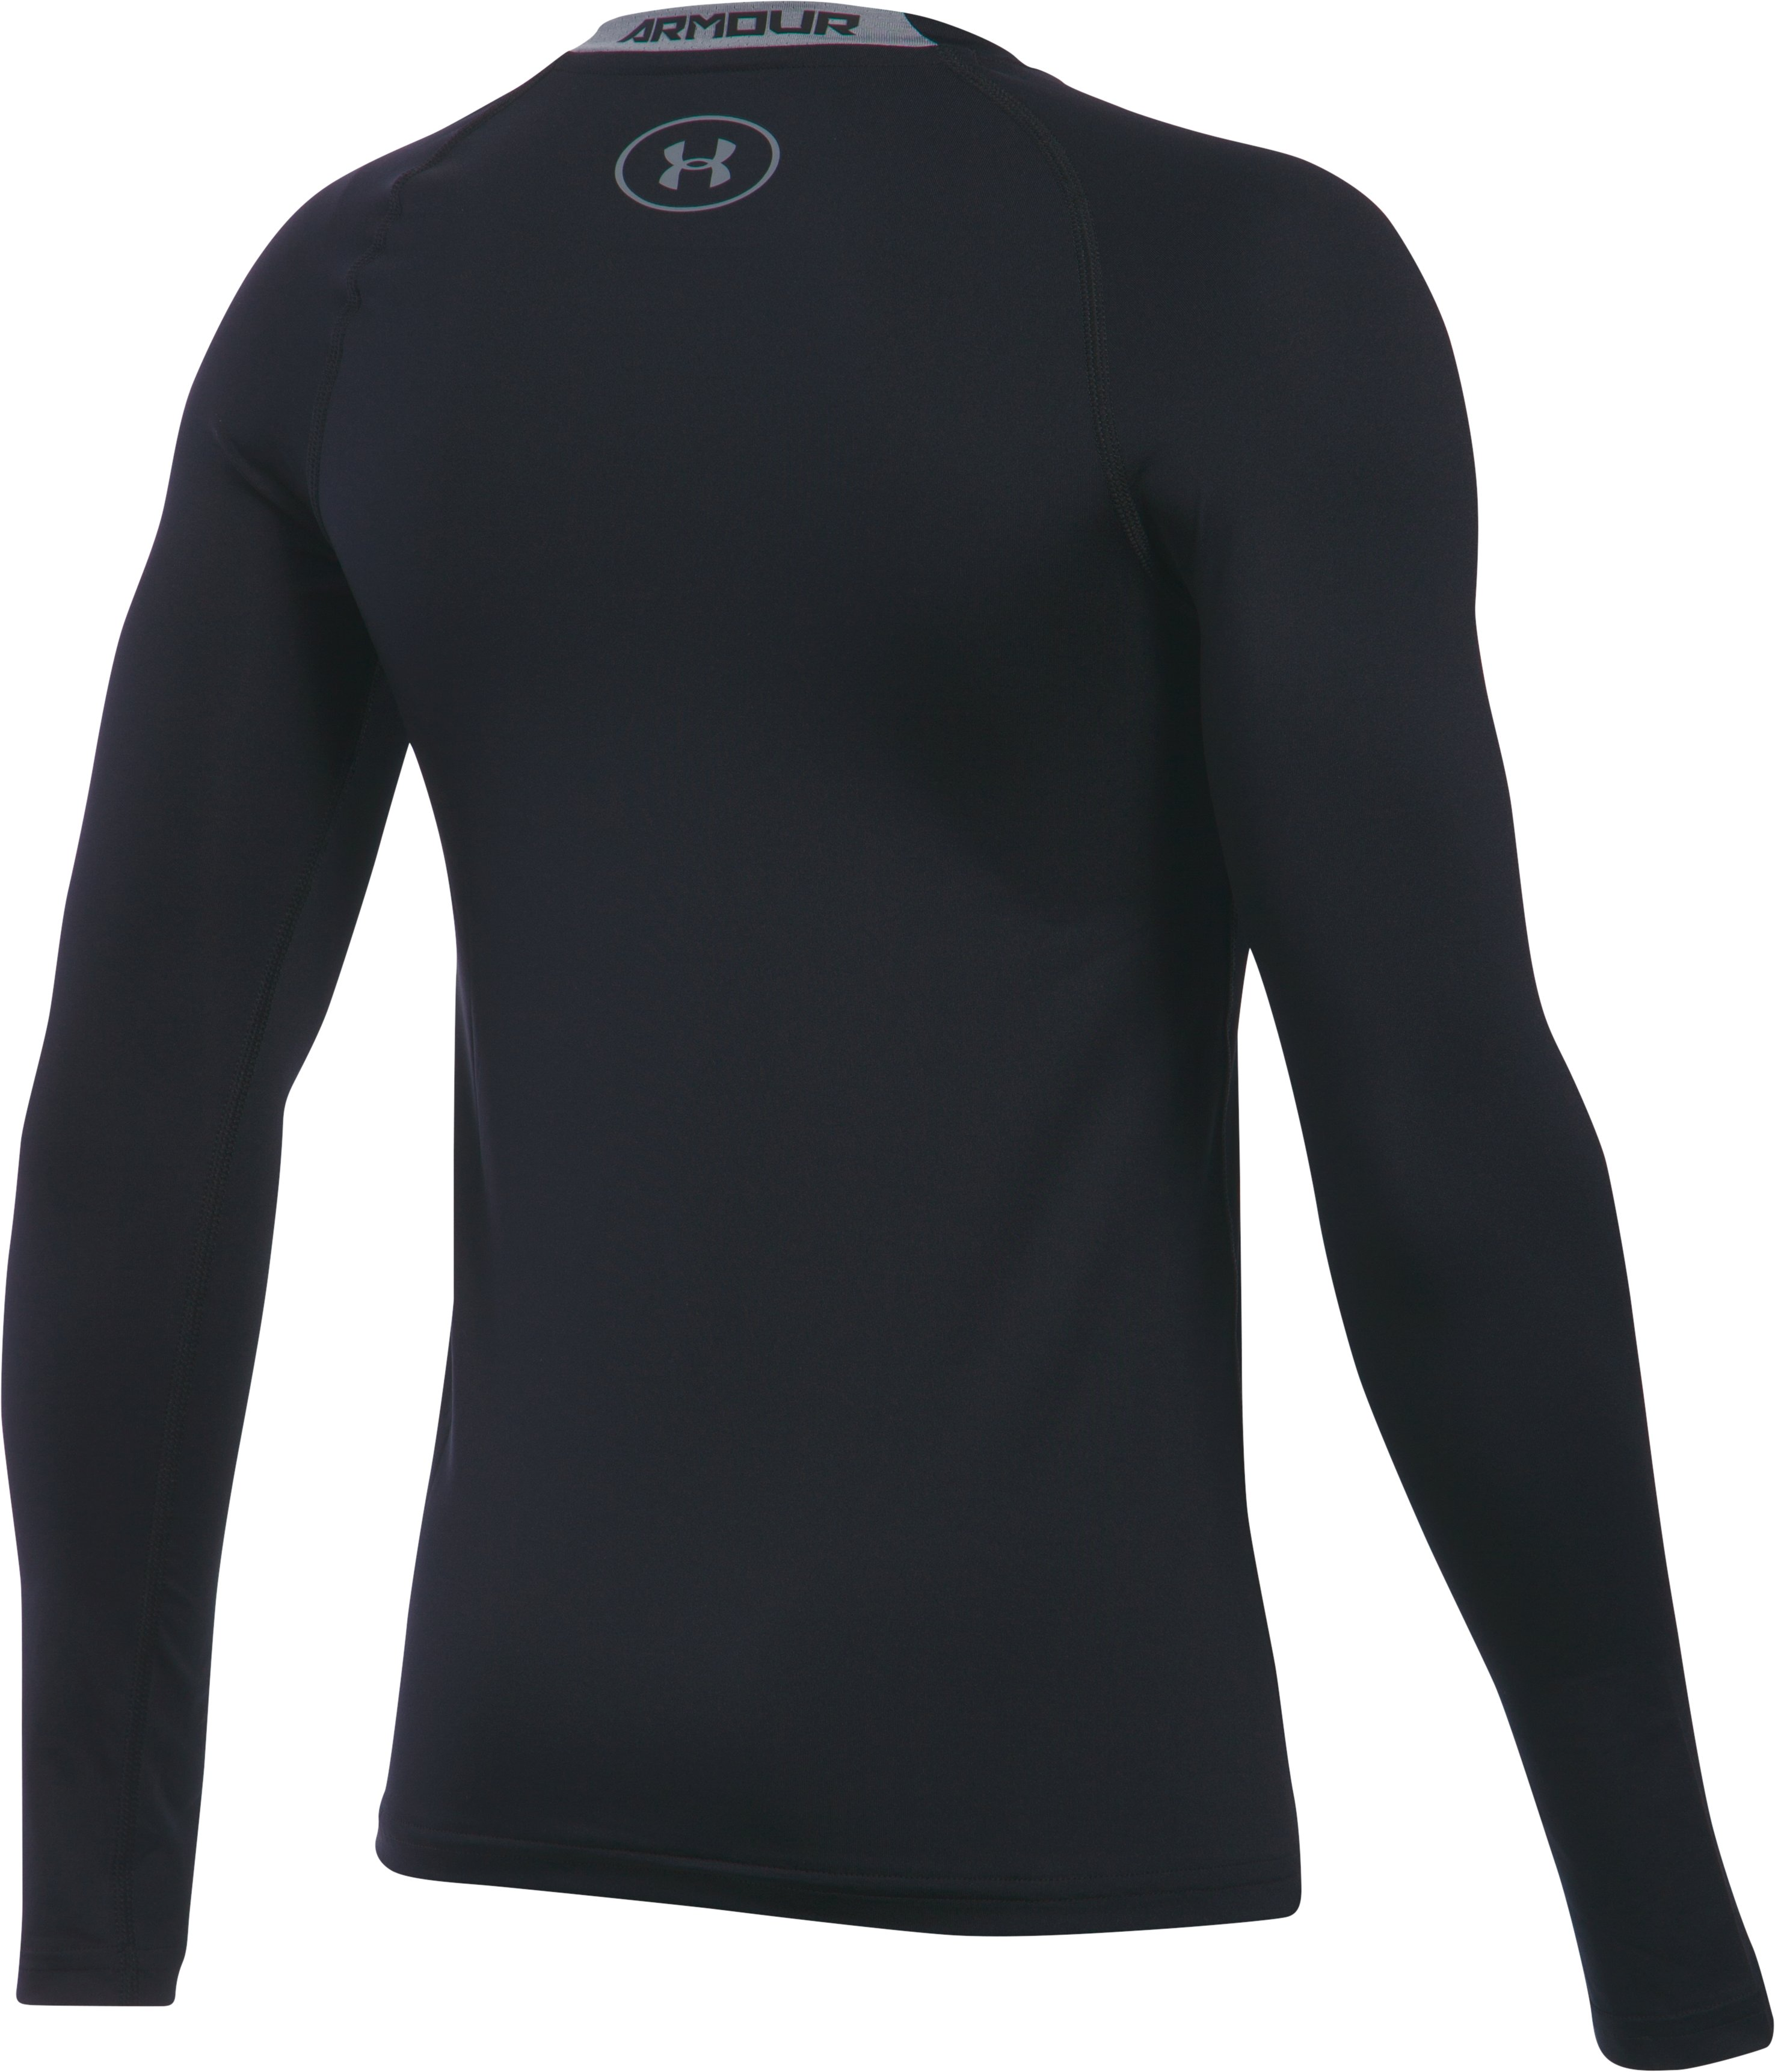 Boys' UA HeatGear® Armour Long Sleeve Fitted Shirt, Black ,